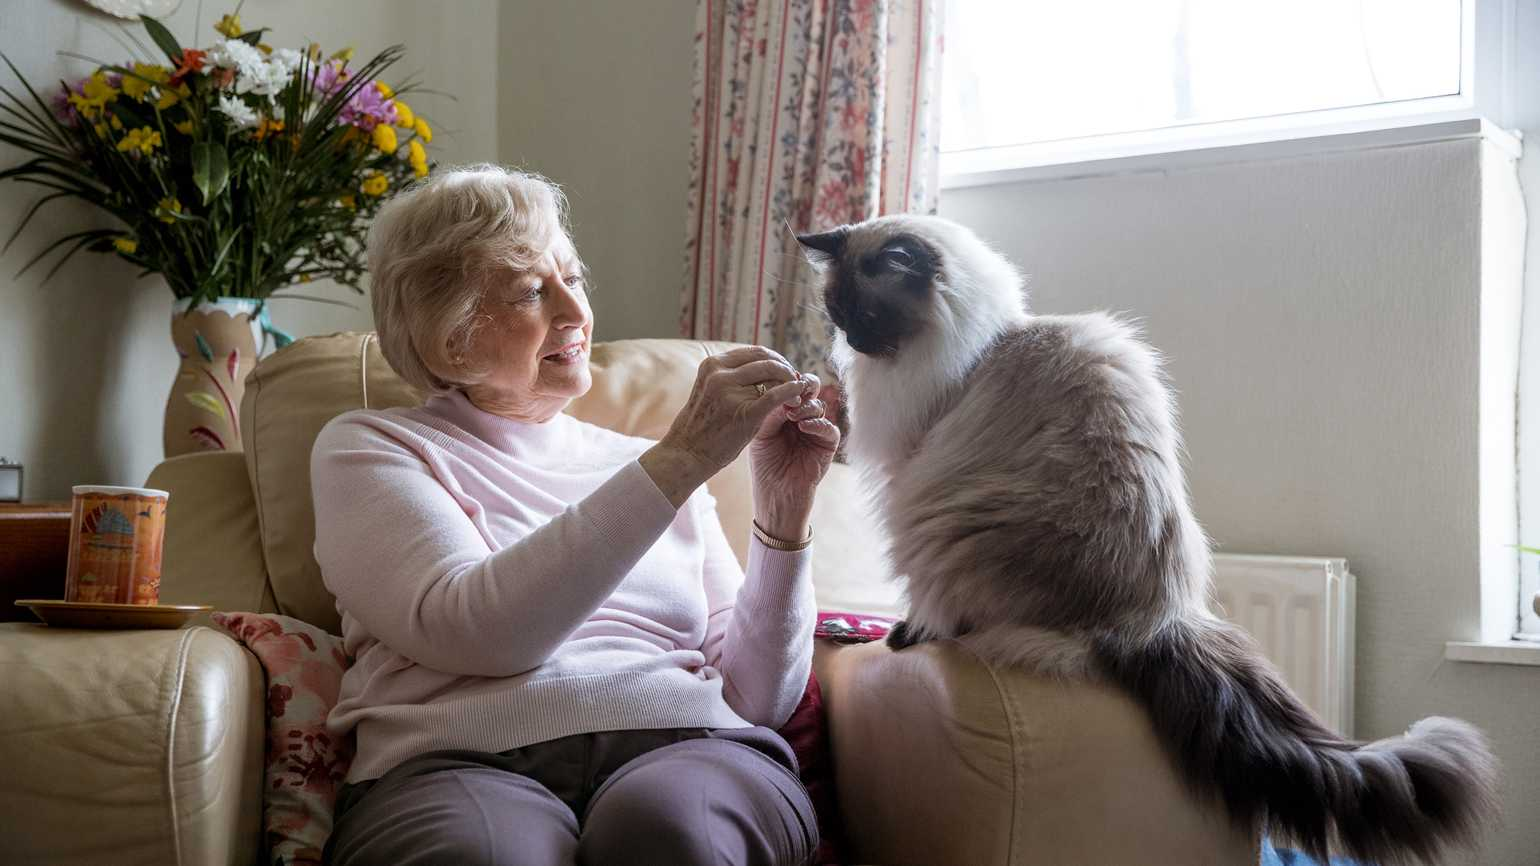 6 Benefits of Pets for People with Alzheimer's